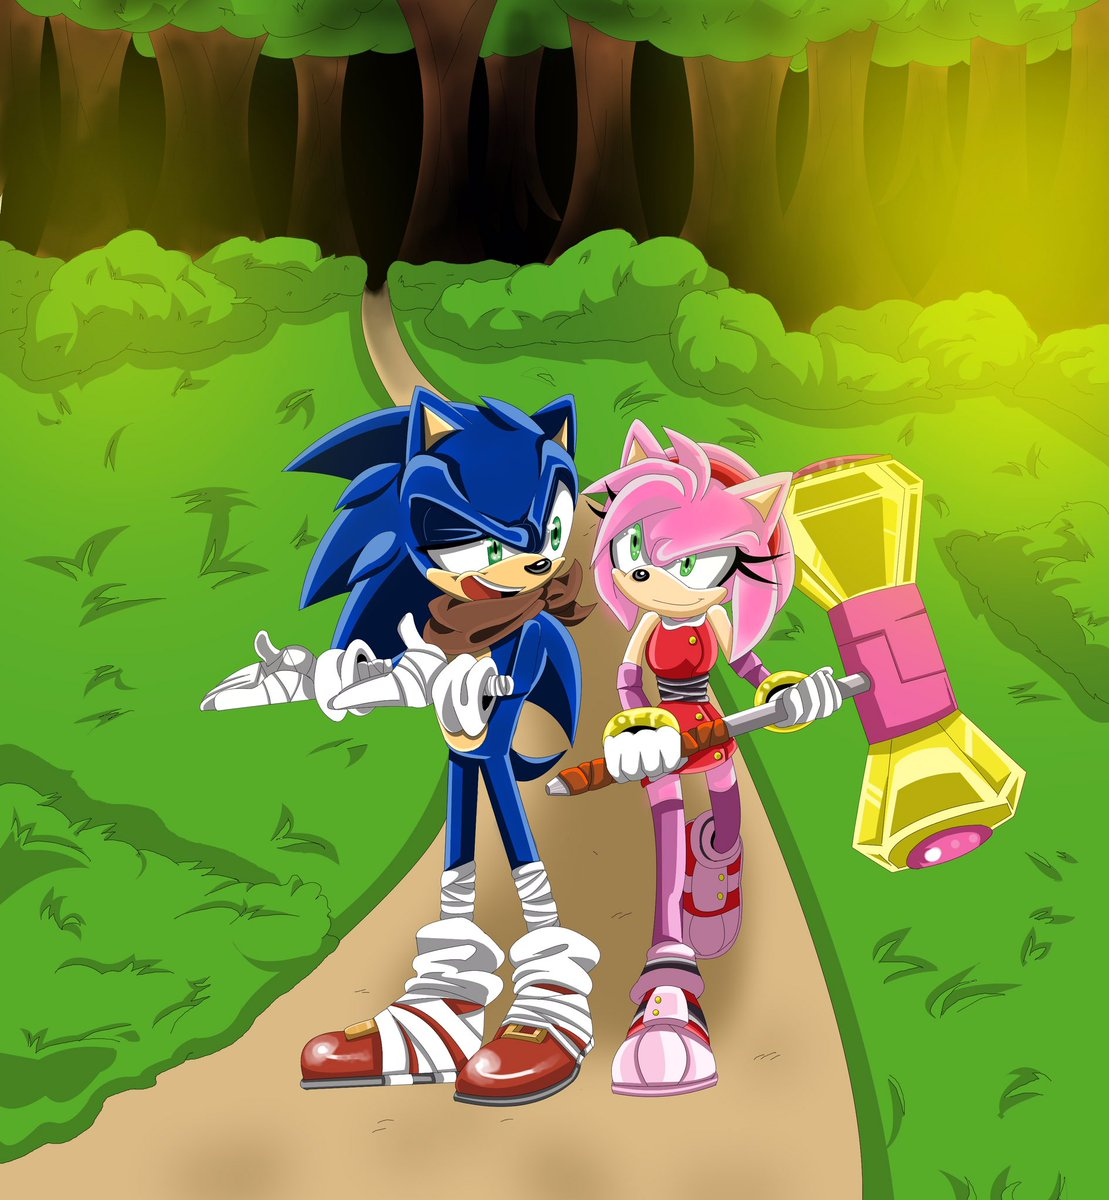 This is old but thought I&#39;d share some #SonAmy boom art for #Sega #SonicTheHedgehog #Sonic #fanart #fandom <br>http://pic.twitter.com/Vg40PyNz9u